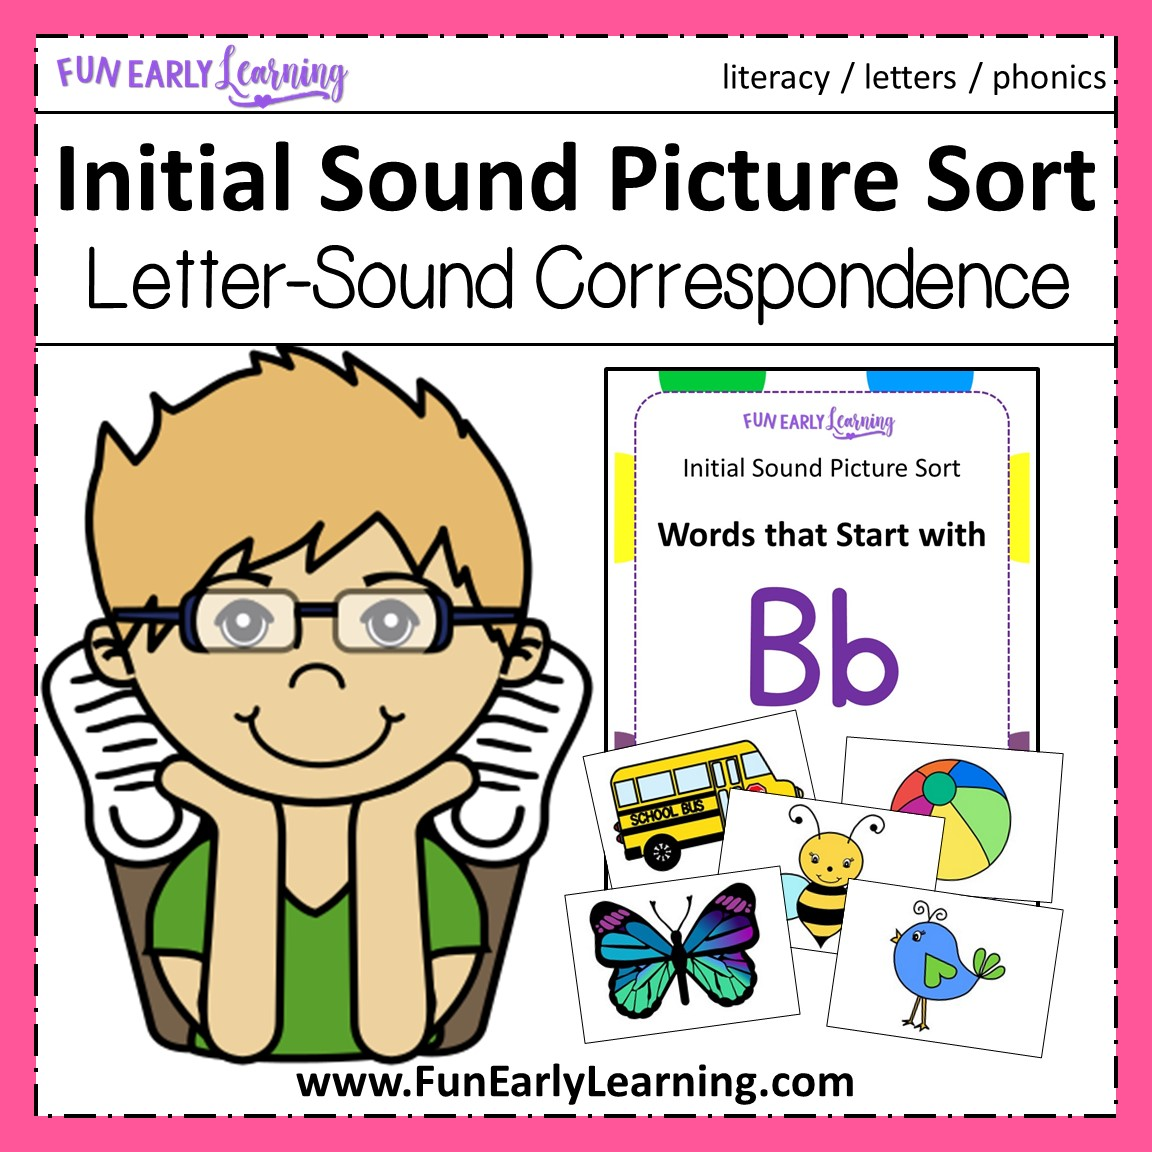 Initial Sound Picture Sort